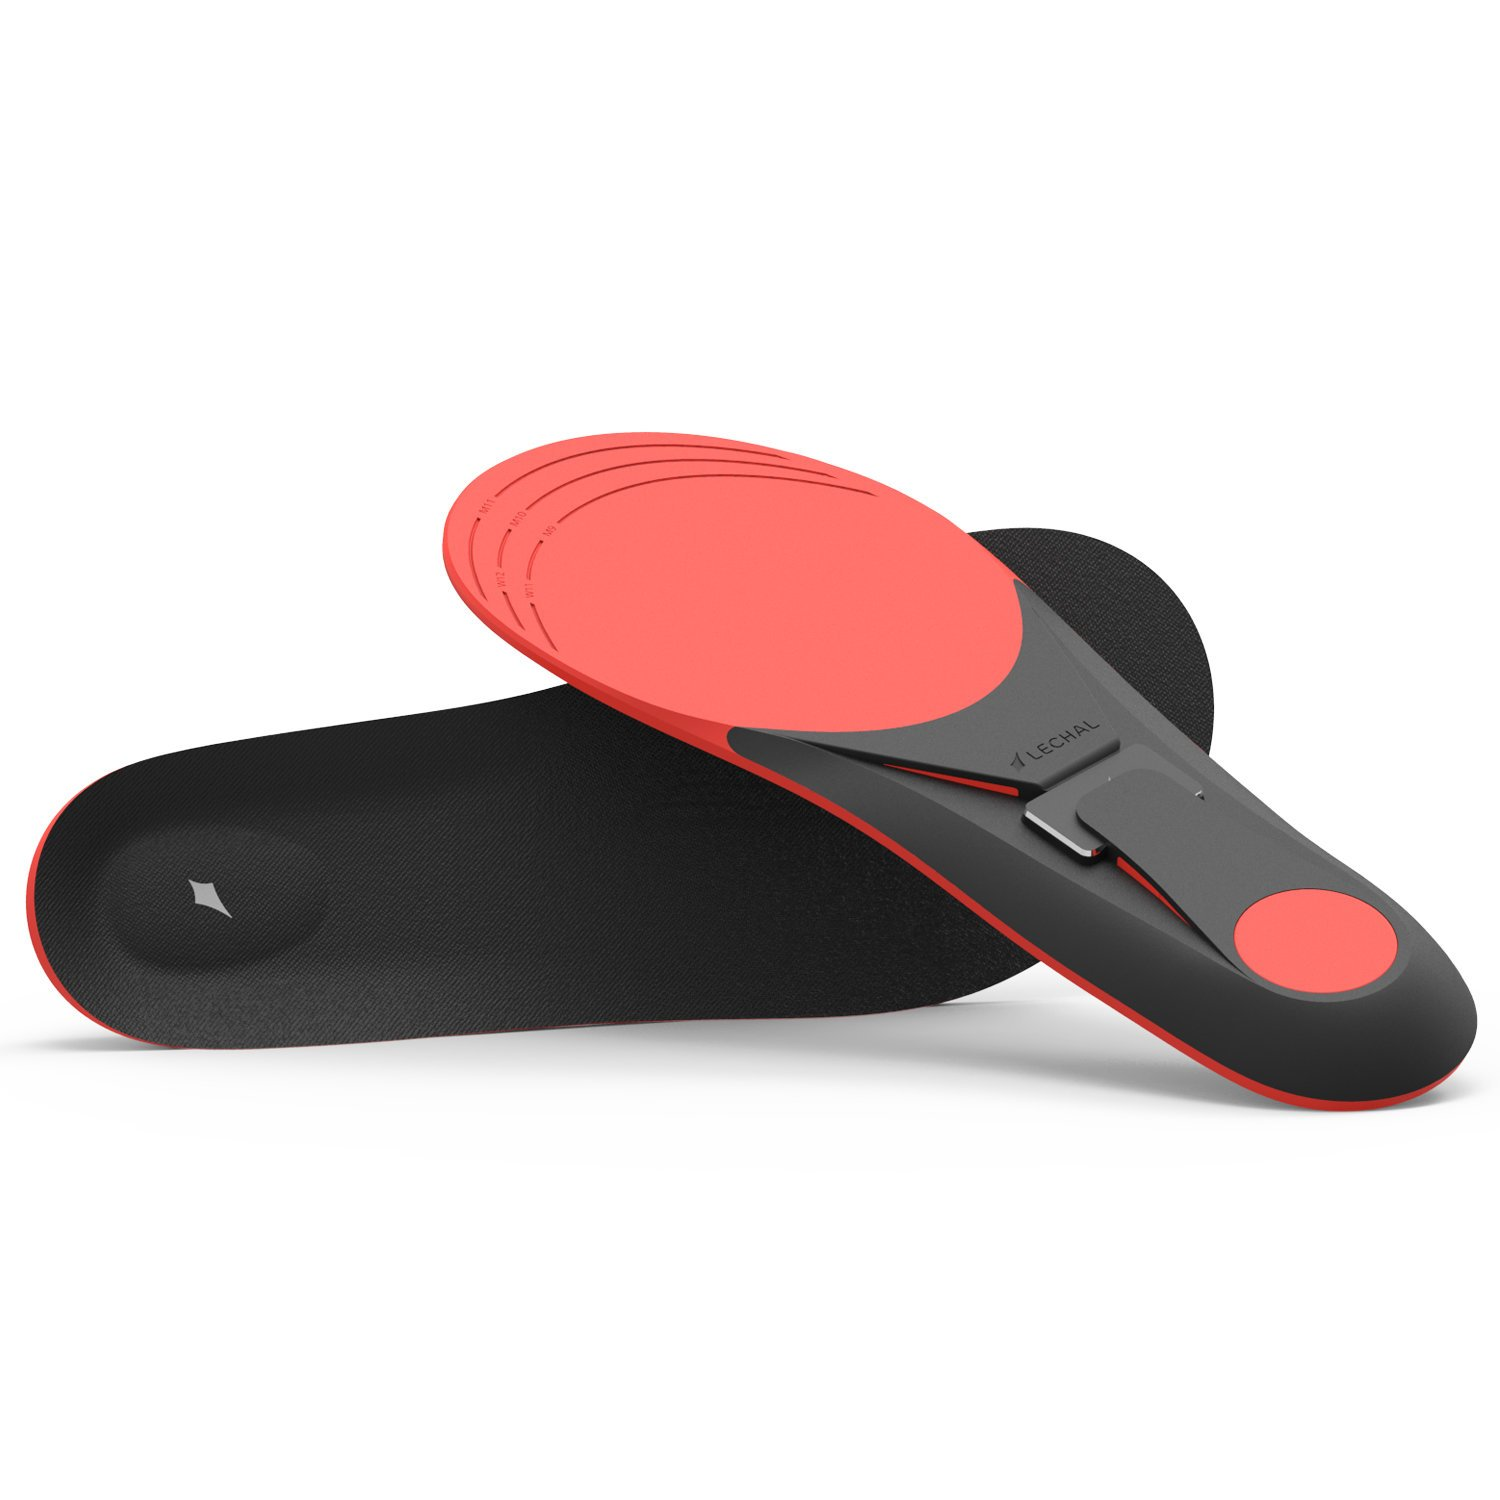 Lechal Smart Navigation and Fitness Tracking Insoles and Buckles, Unisex, Large